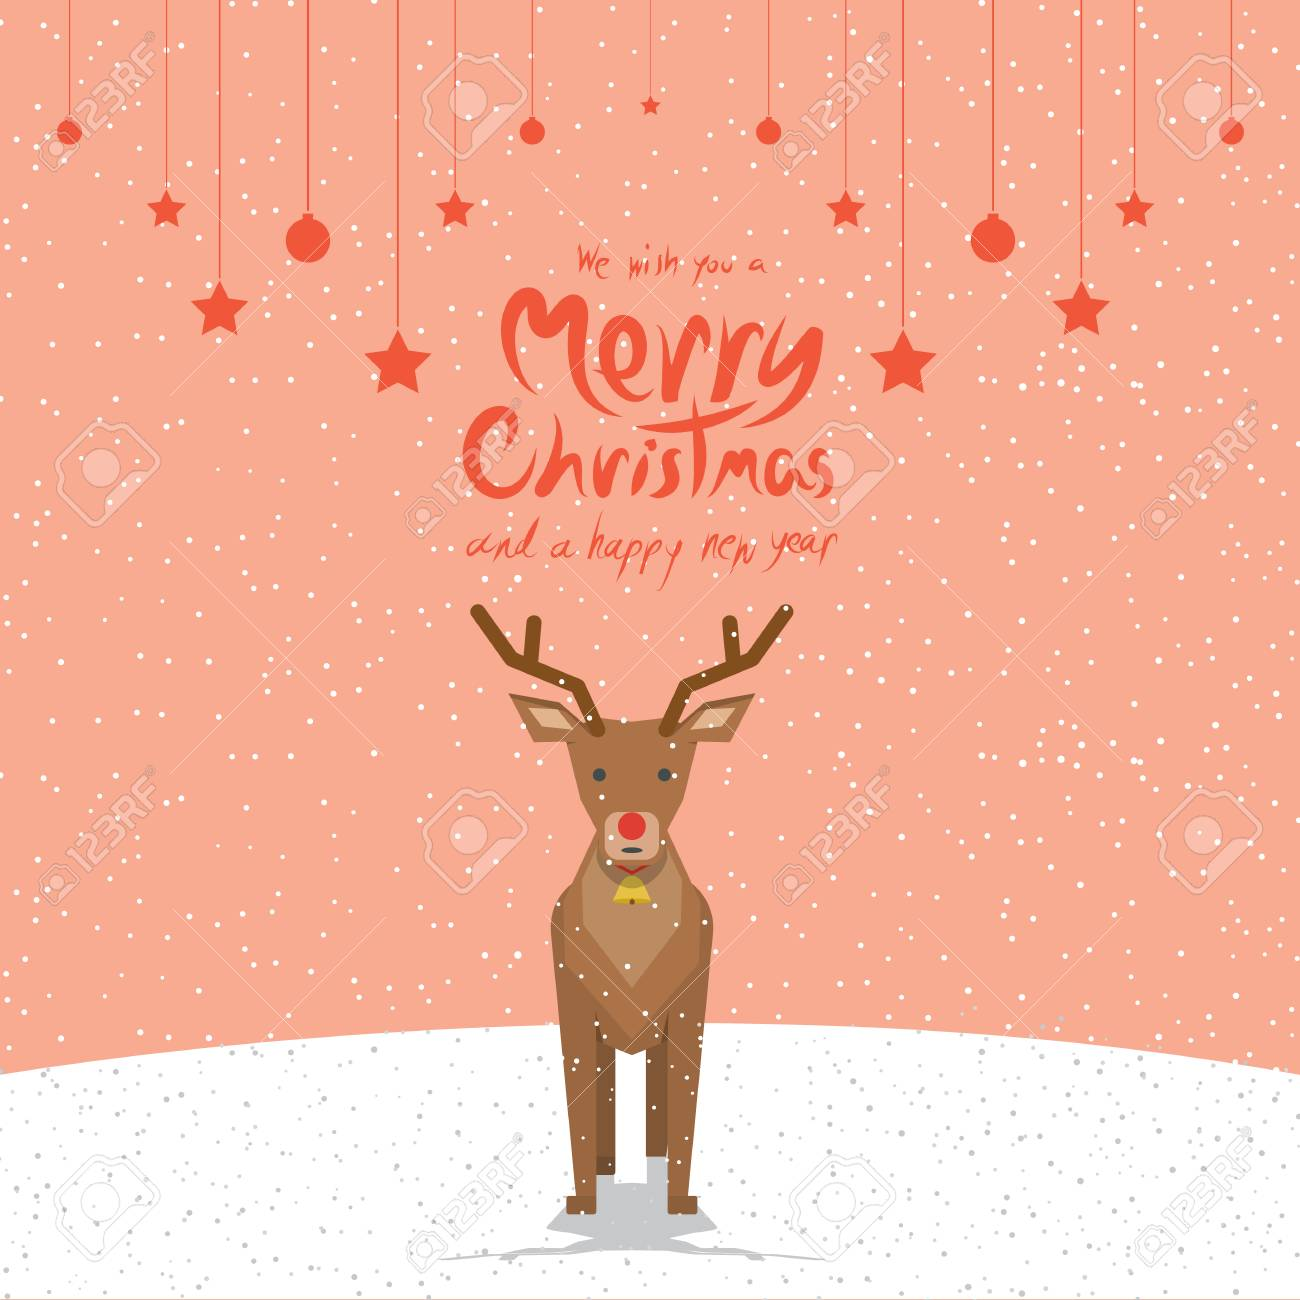 Reindeer (Christmas Cards) Royalty Free Cliparts, Vectors, And Stock ...